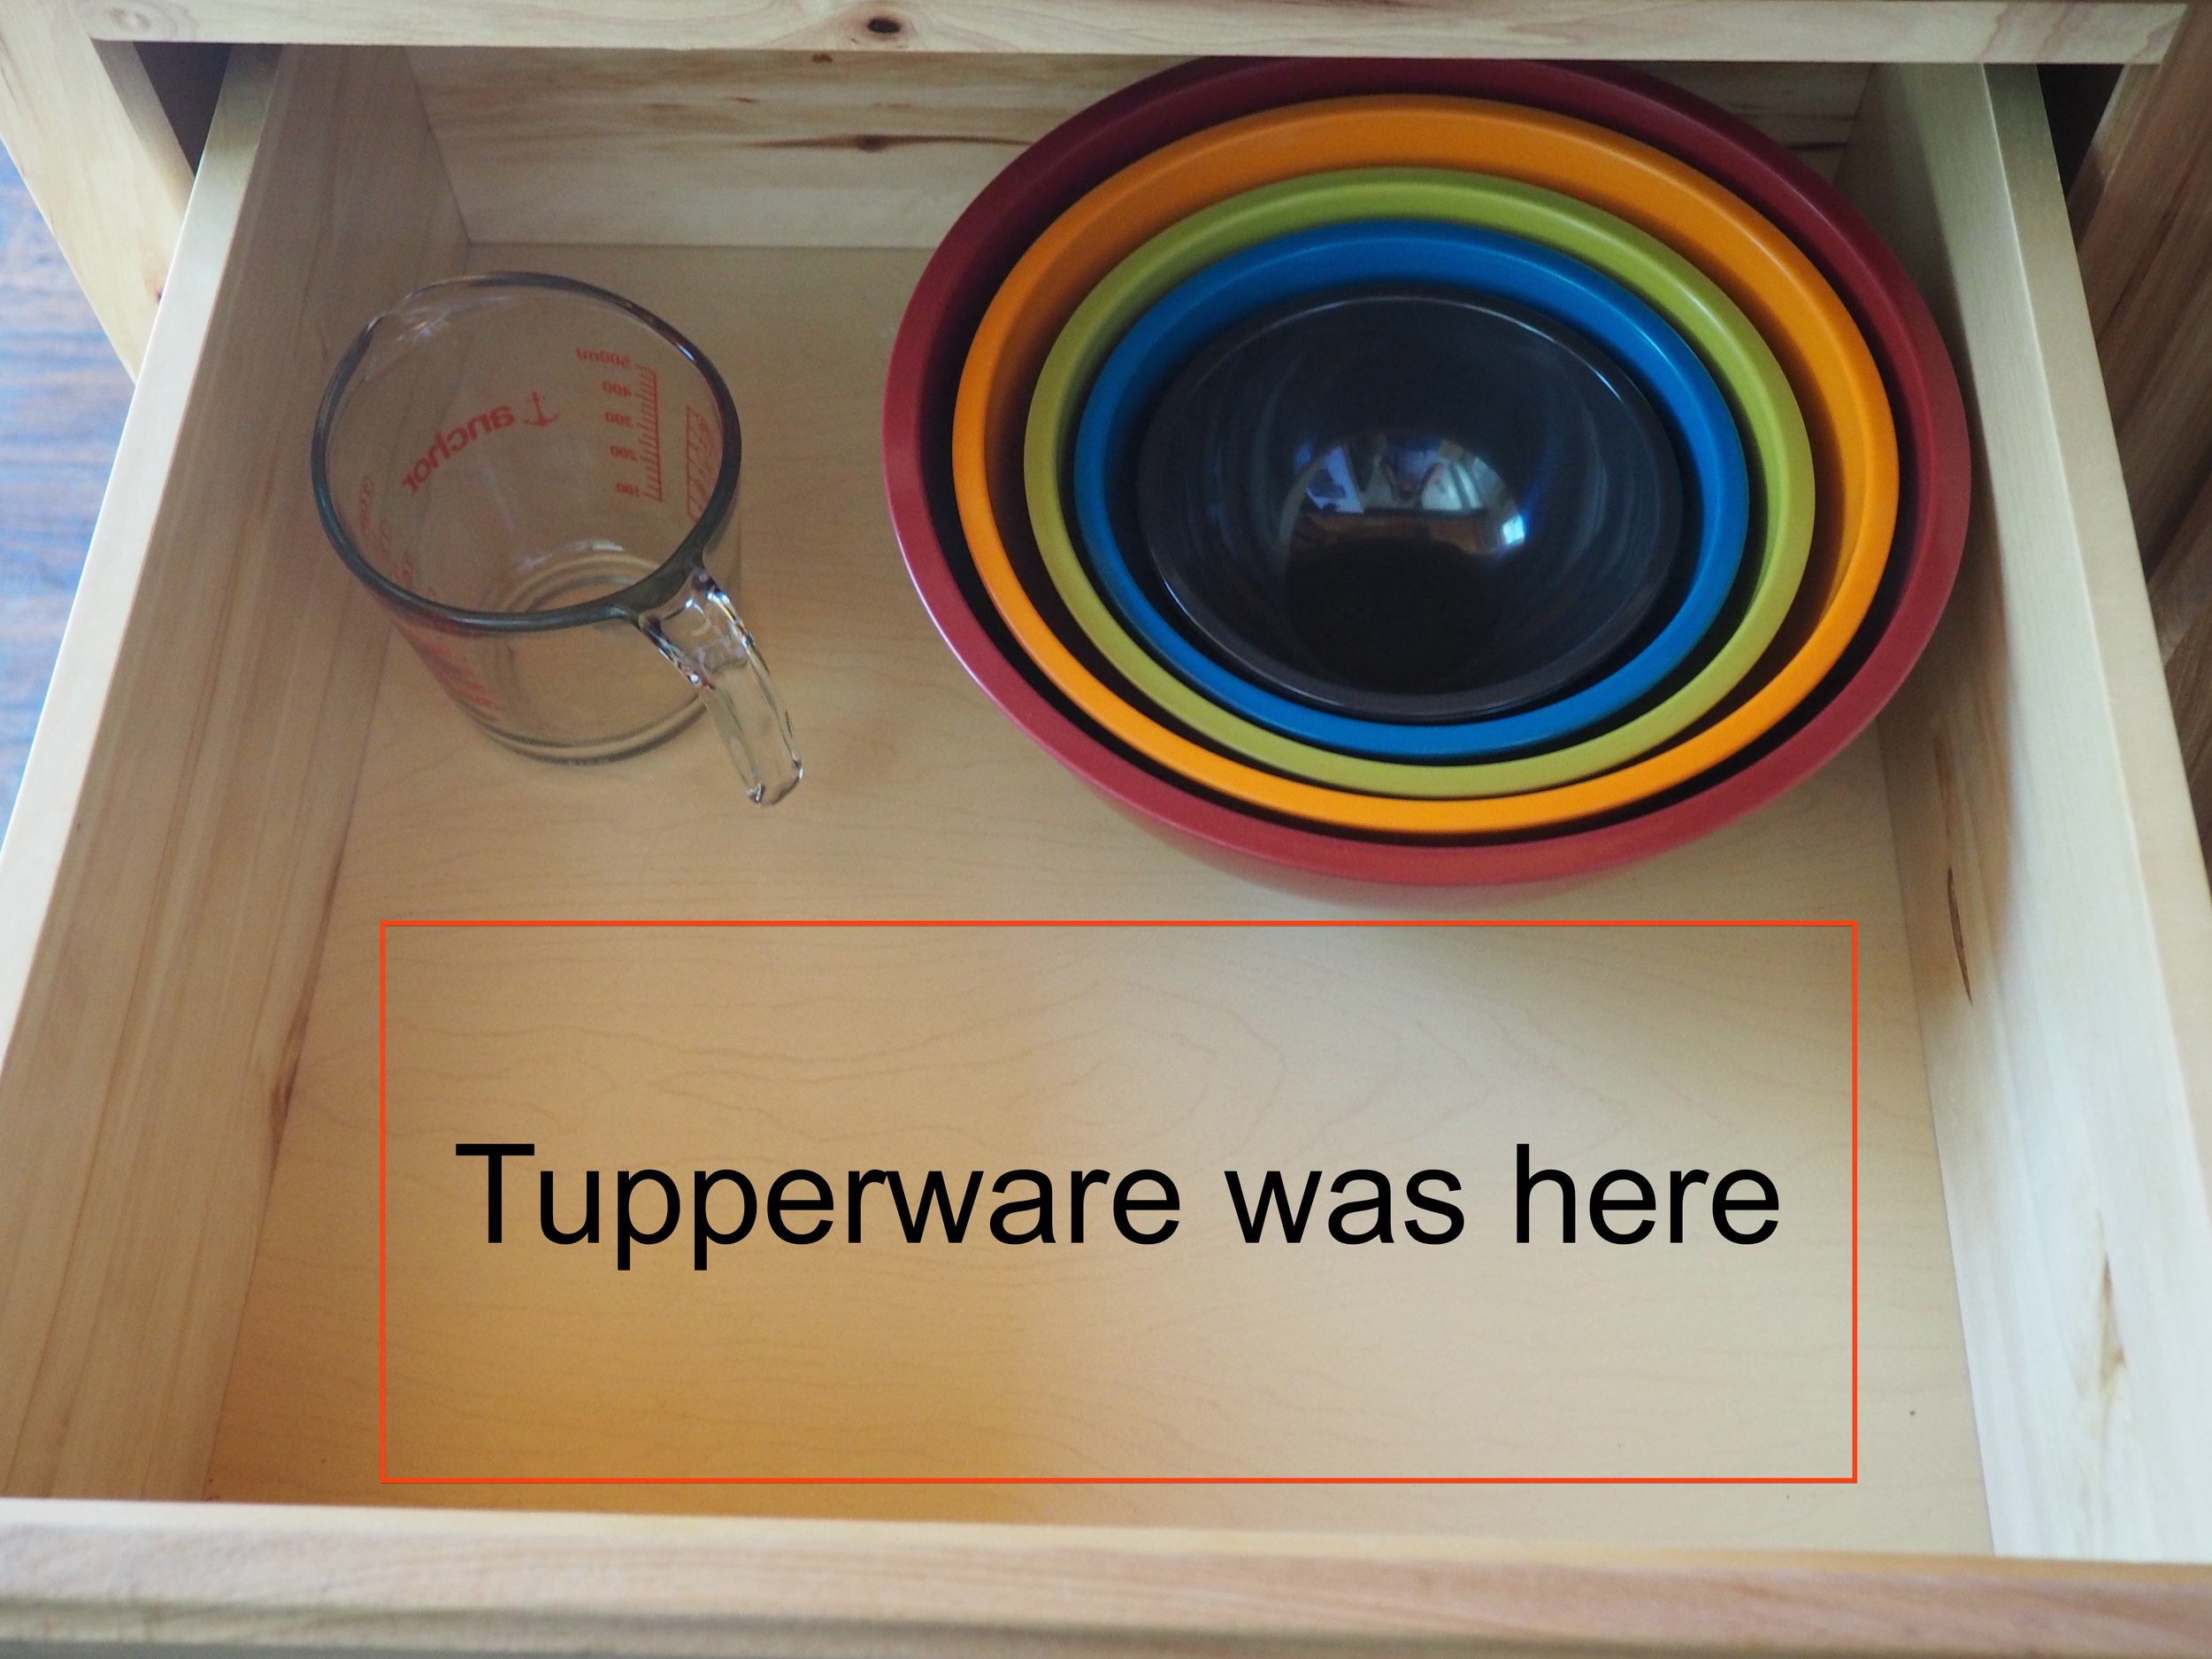 Some of our tupperware went missing.